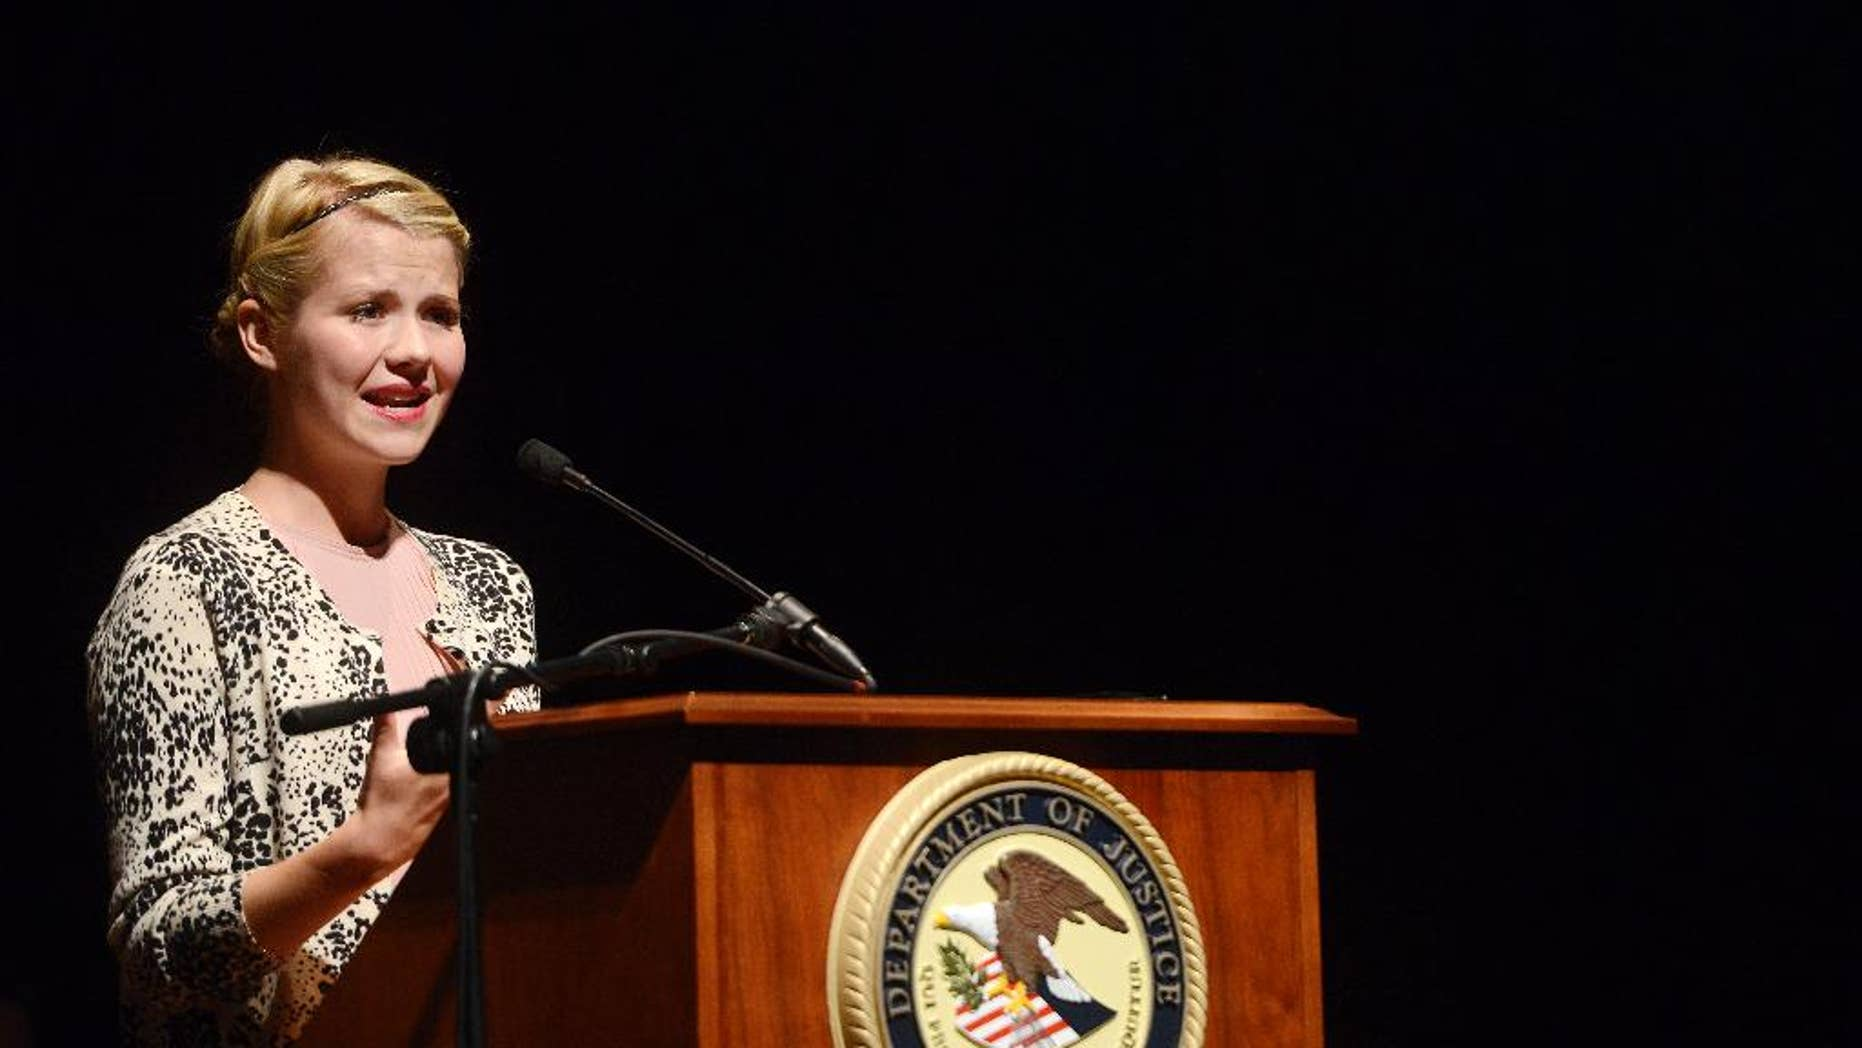 Elizabeth Smart-Gilmour speaks on overcoming adversity and her story of being kidnapped when she was 14, during a conference on violent crime and human trafficking held in Sioux Falls, S.D., Wednesday, Aug 13, 2014. (AP Photo/Argus Leader, Elisha Page)